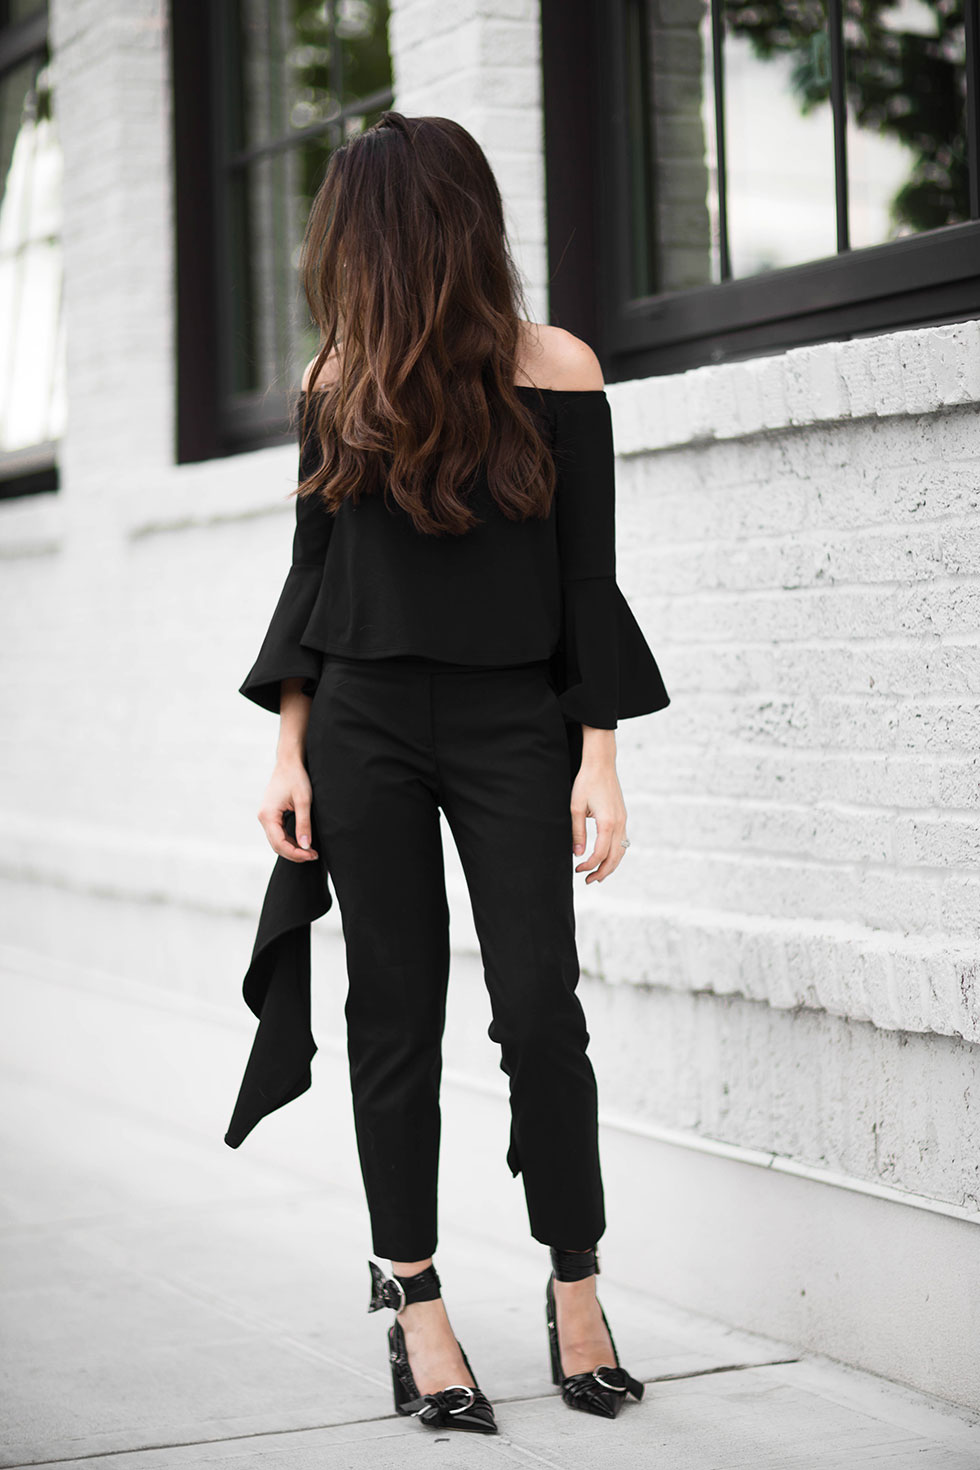 Your Not-So-Basic Guide to Rocking an Off-The-Shoulder Top -- ELLERY RUFFLE SLEEVE OFF-SHOULDER TOP, Dior Black patent calfskin slingback pump Line from the Summer 2016 catwalk show, All Black Outfit